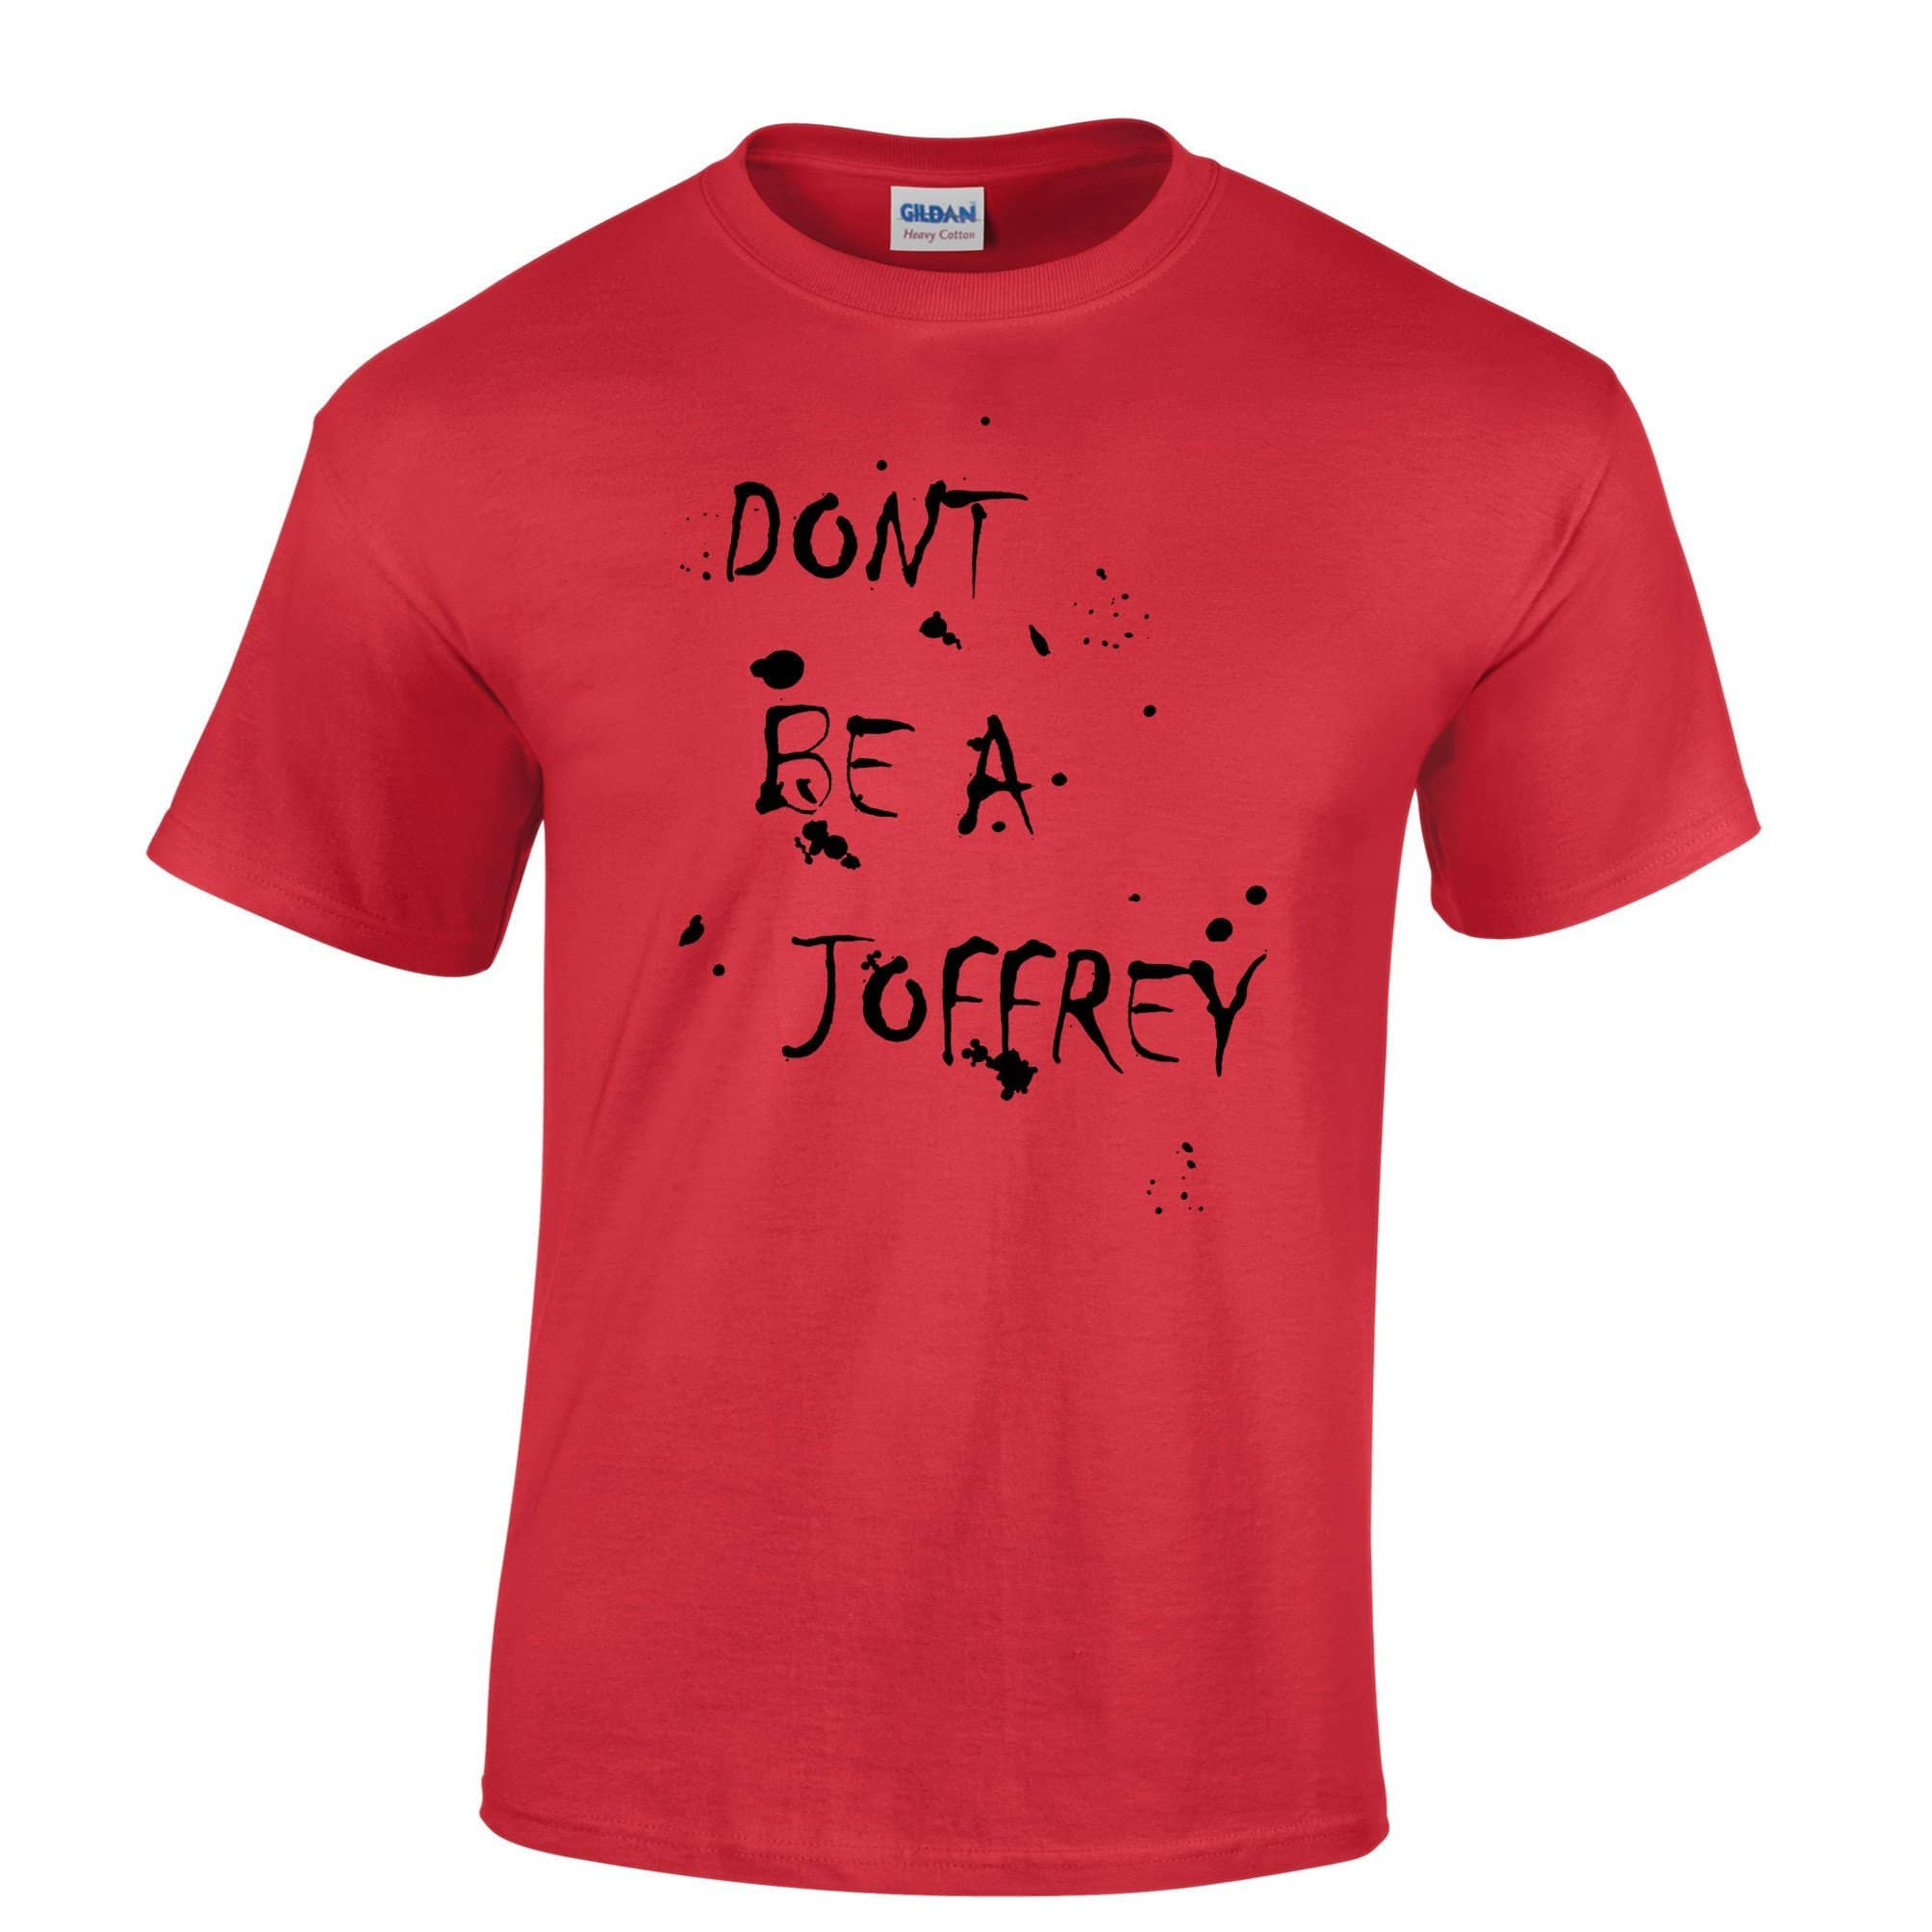 Don't Be a Joffrey Funny Mens T-Shirt